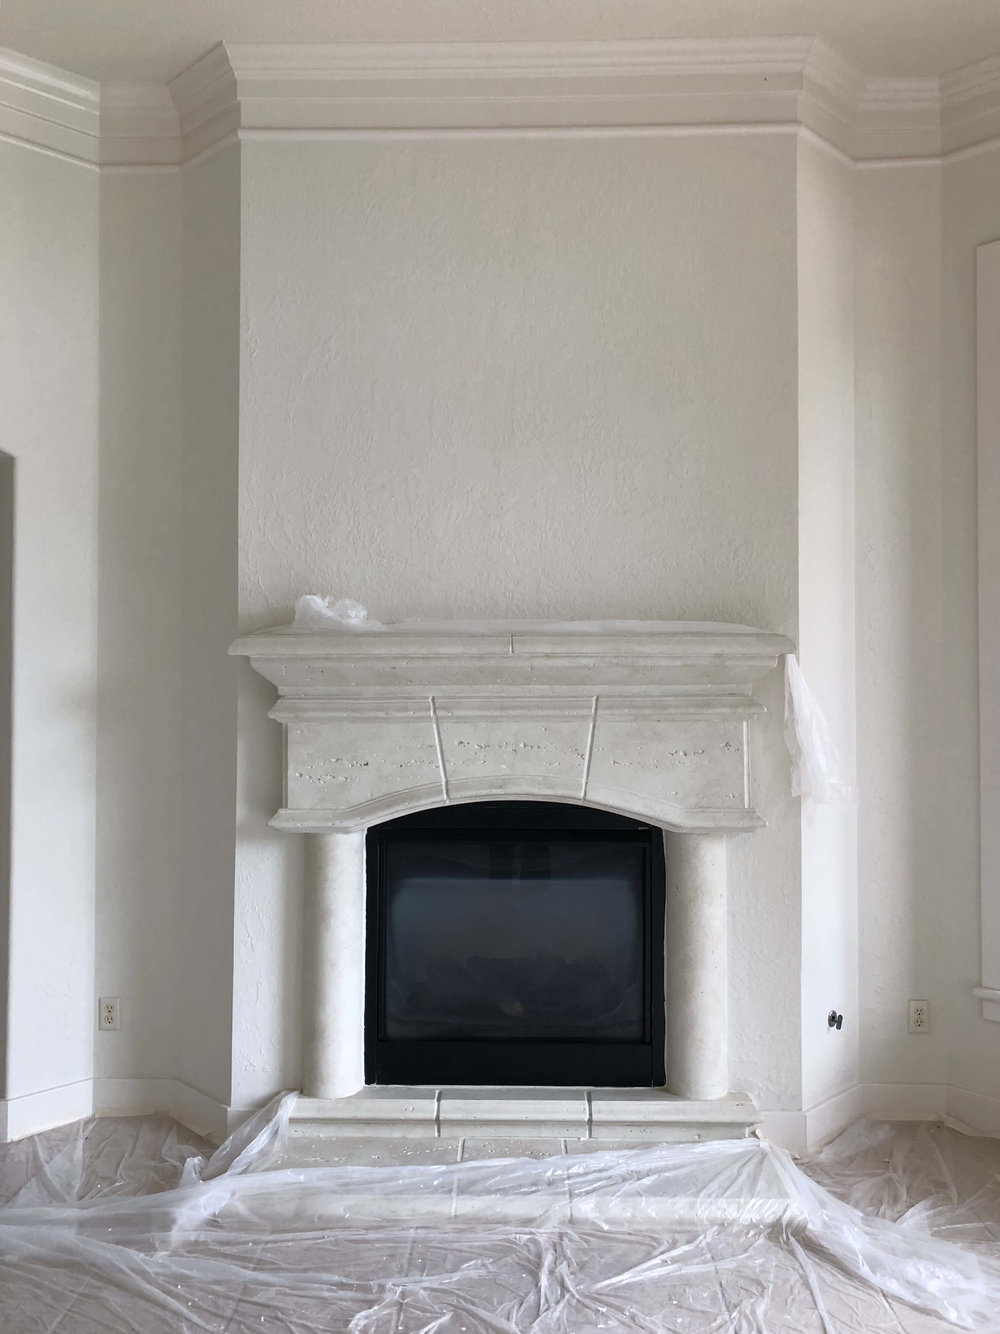 AFTER REMODEL - Living room fireplace with mouldings and walls matching in color for a spacious feel